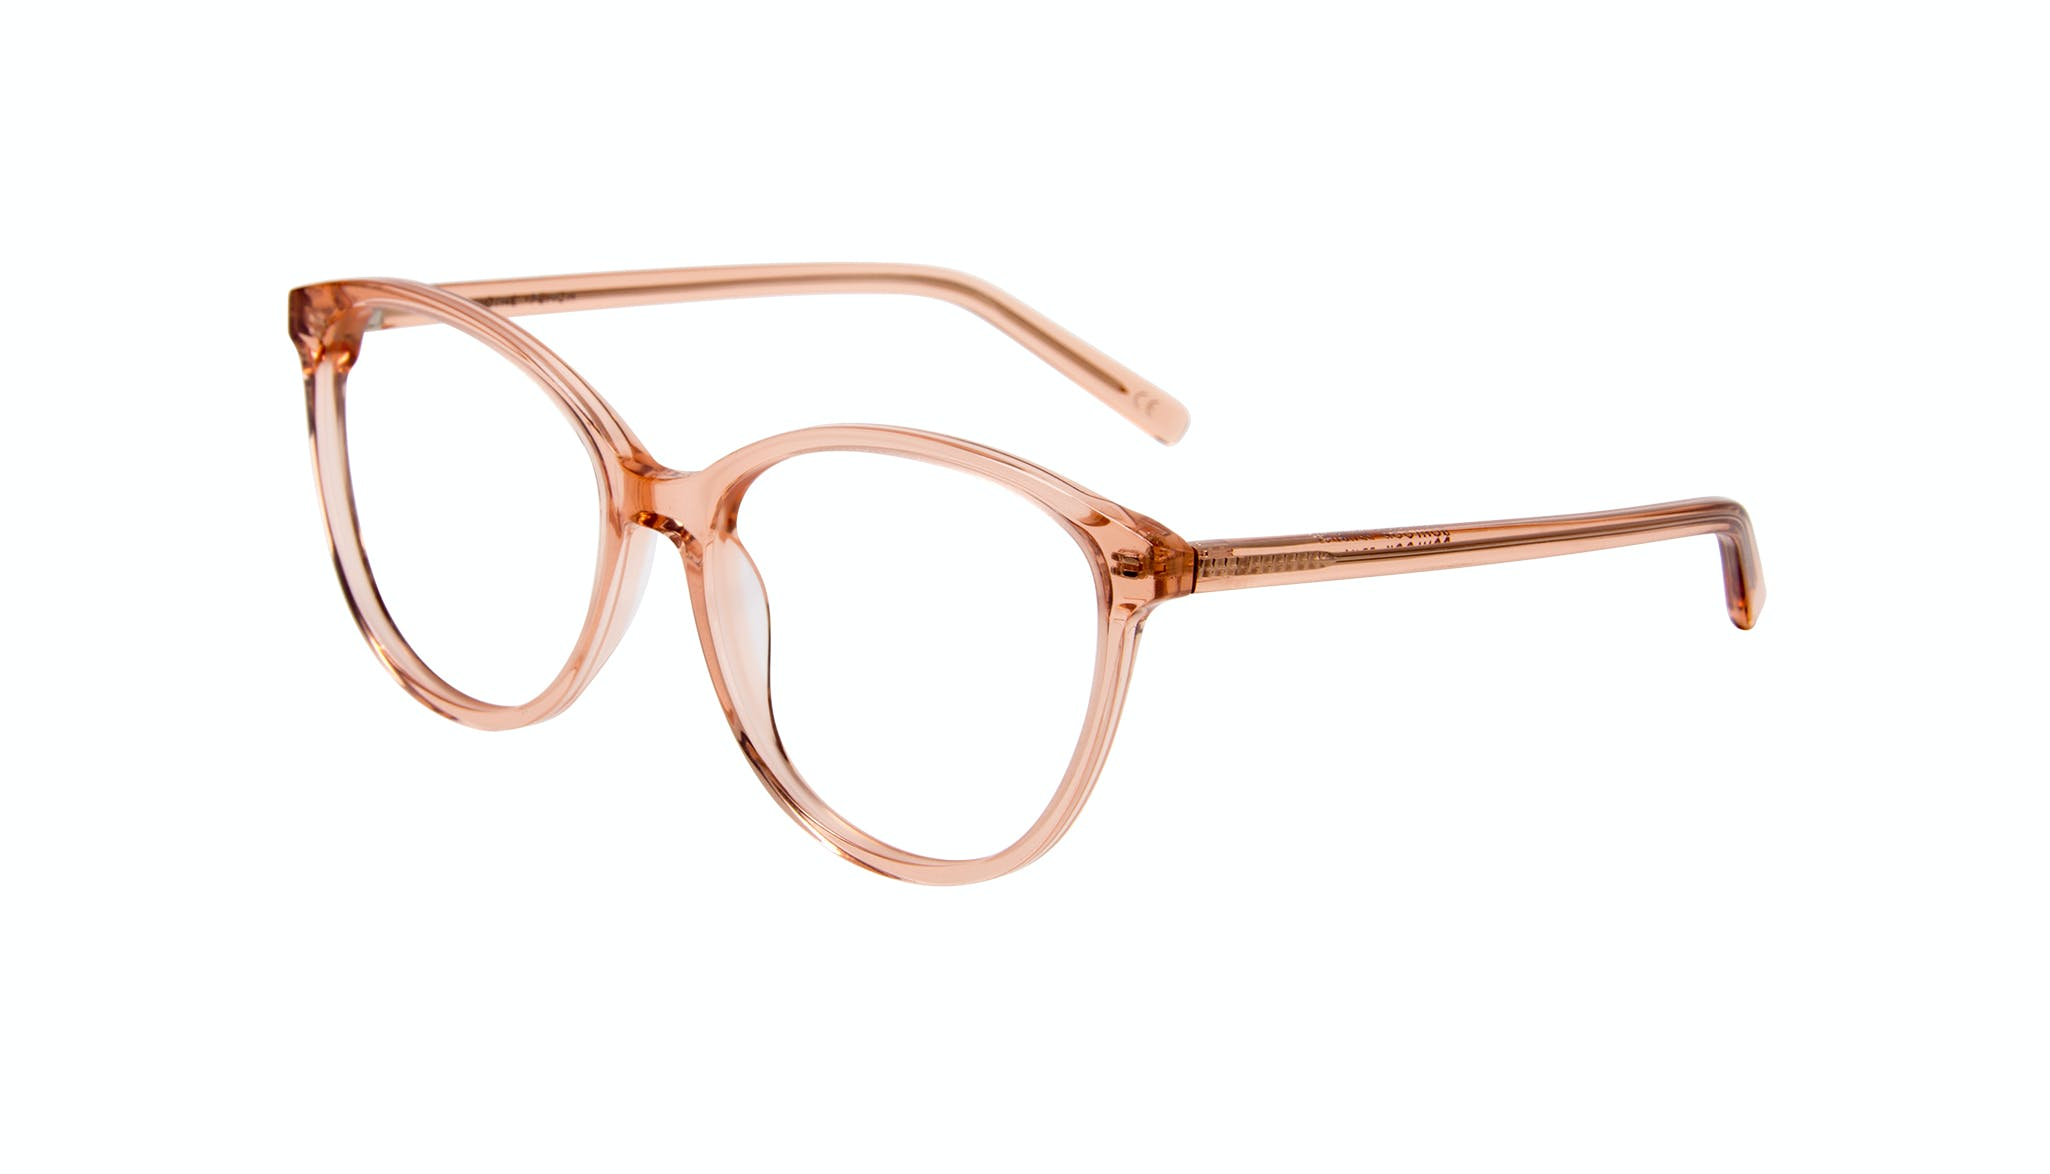 Affordable Fashion Glasses Cat Eye Round Eyeglasses Women Imagine Peach Tilt